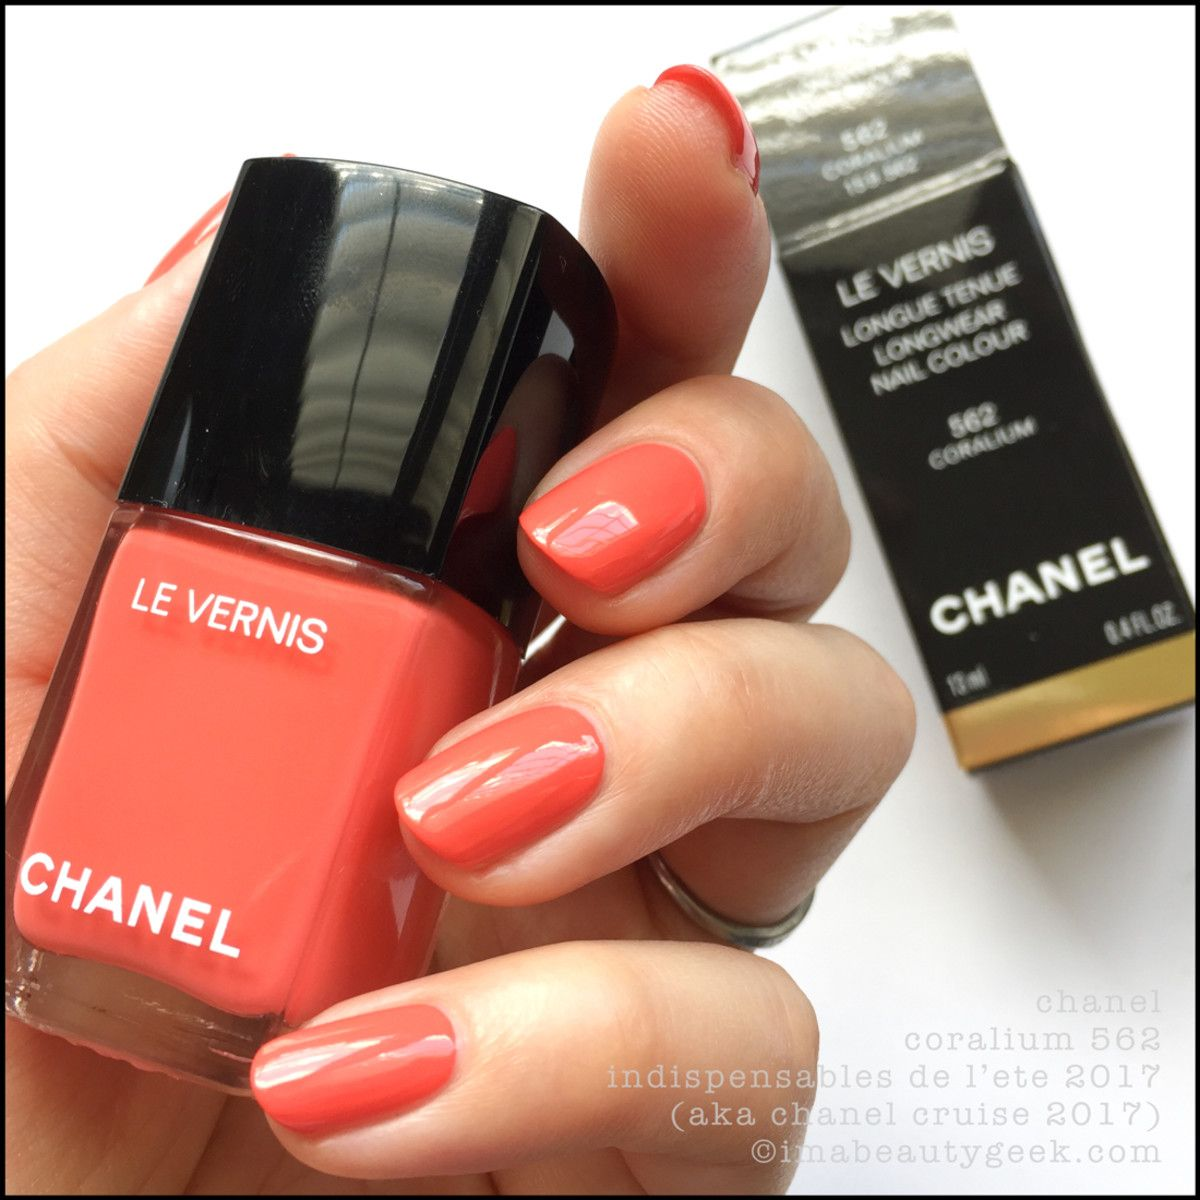 cdd34175ed8 Chanel Coralium 552 – Chanel Cruise 2017 Summer Collection Chanel Nails